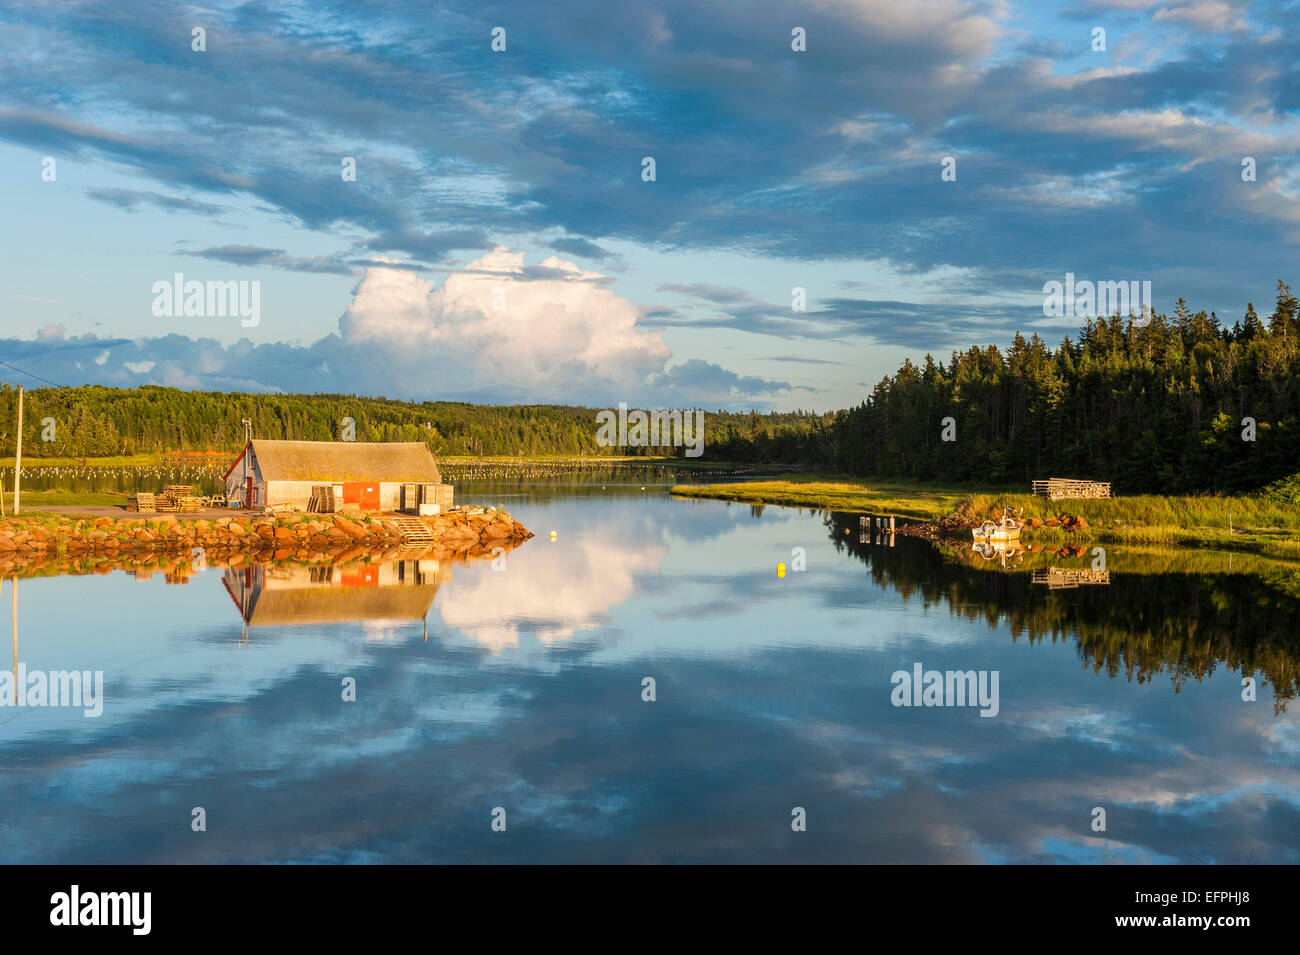 Little hut on a lake at sunset on the north shore of Prince Edward Island, Canada, North America - Stock Image